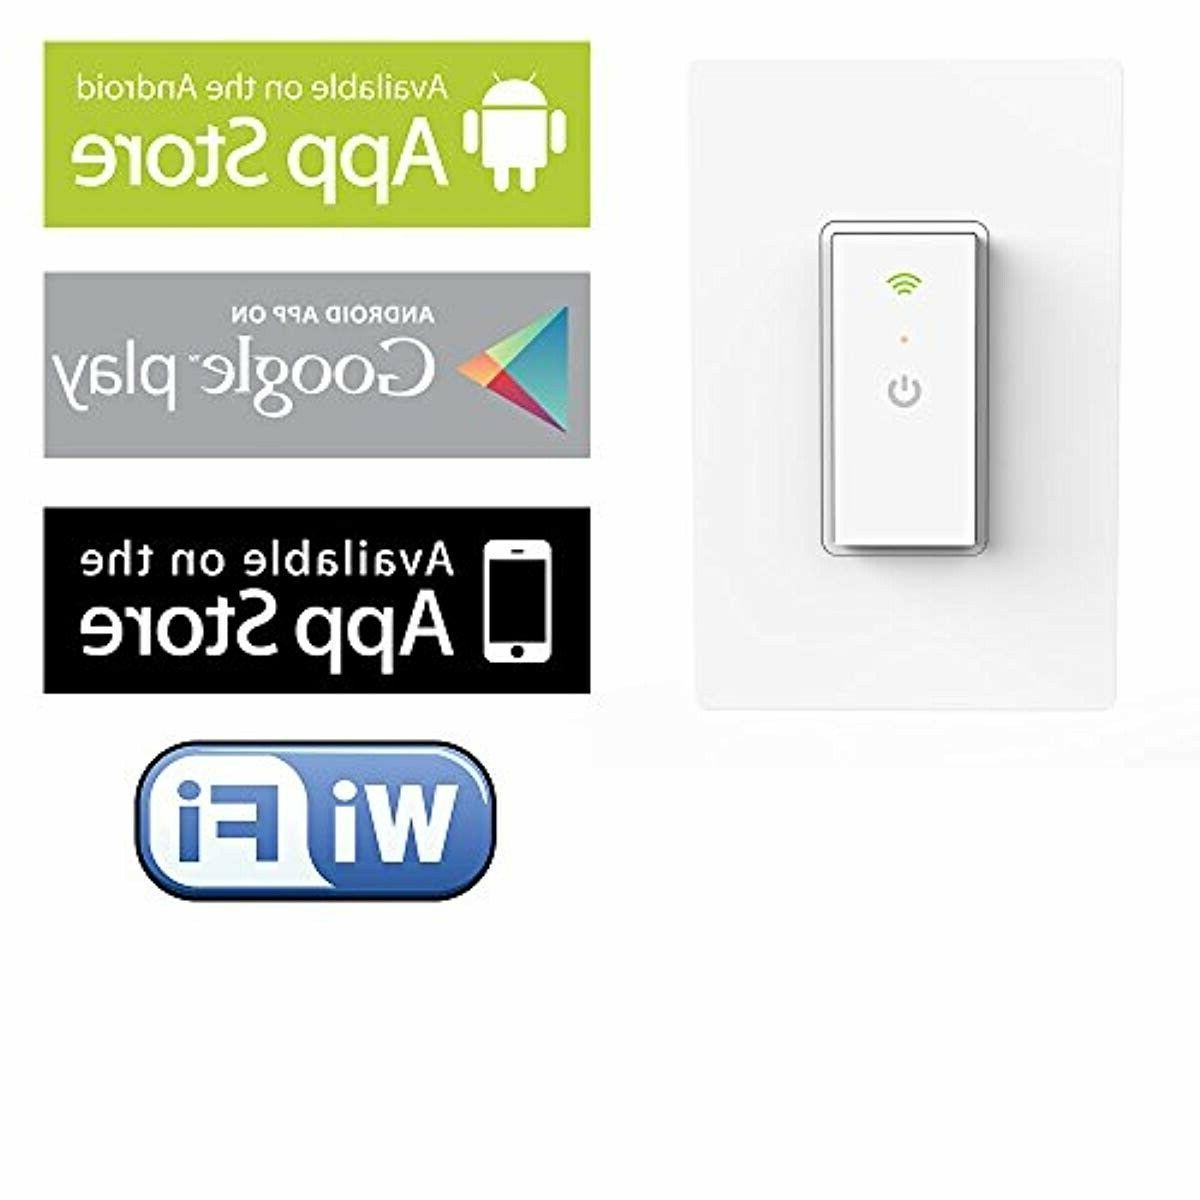 Ankuoo NEO Wi-Fi Limited DIY Required, White